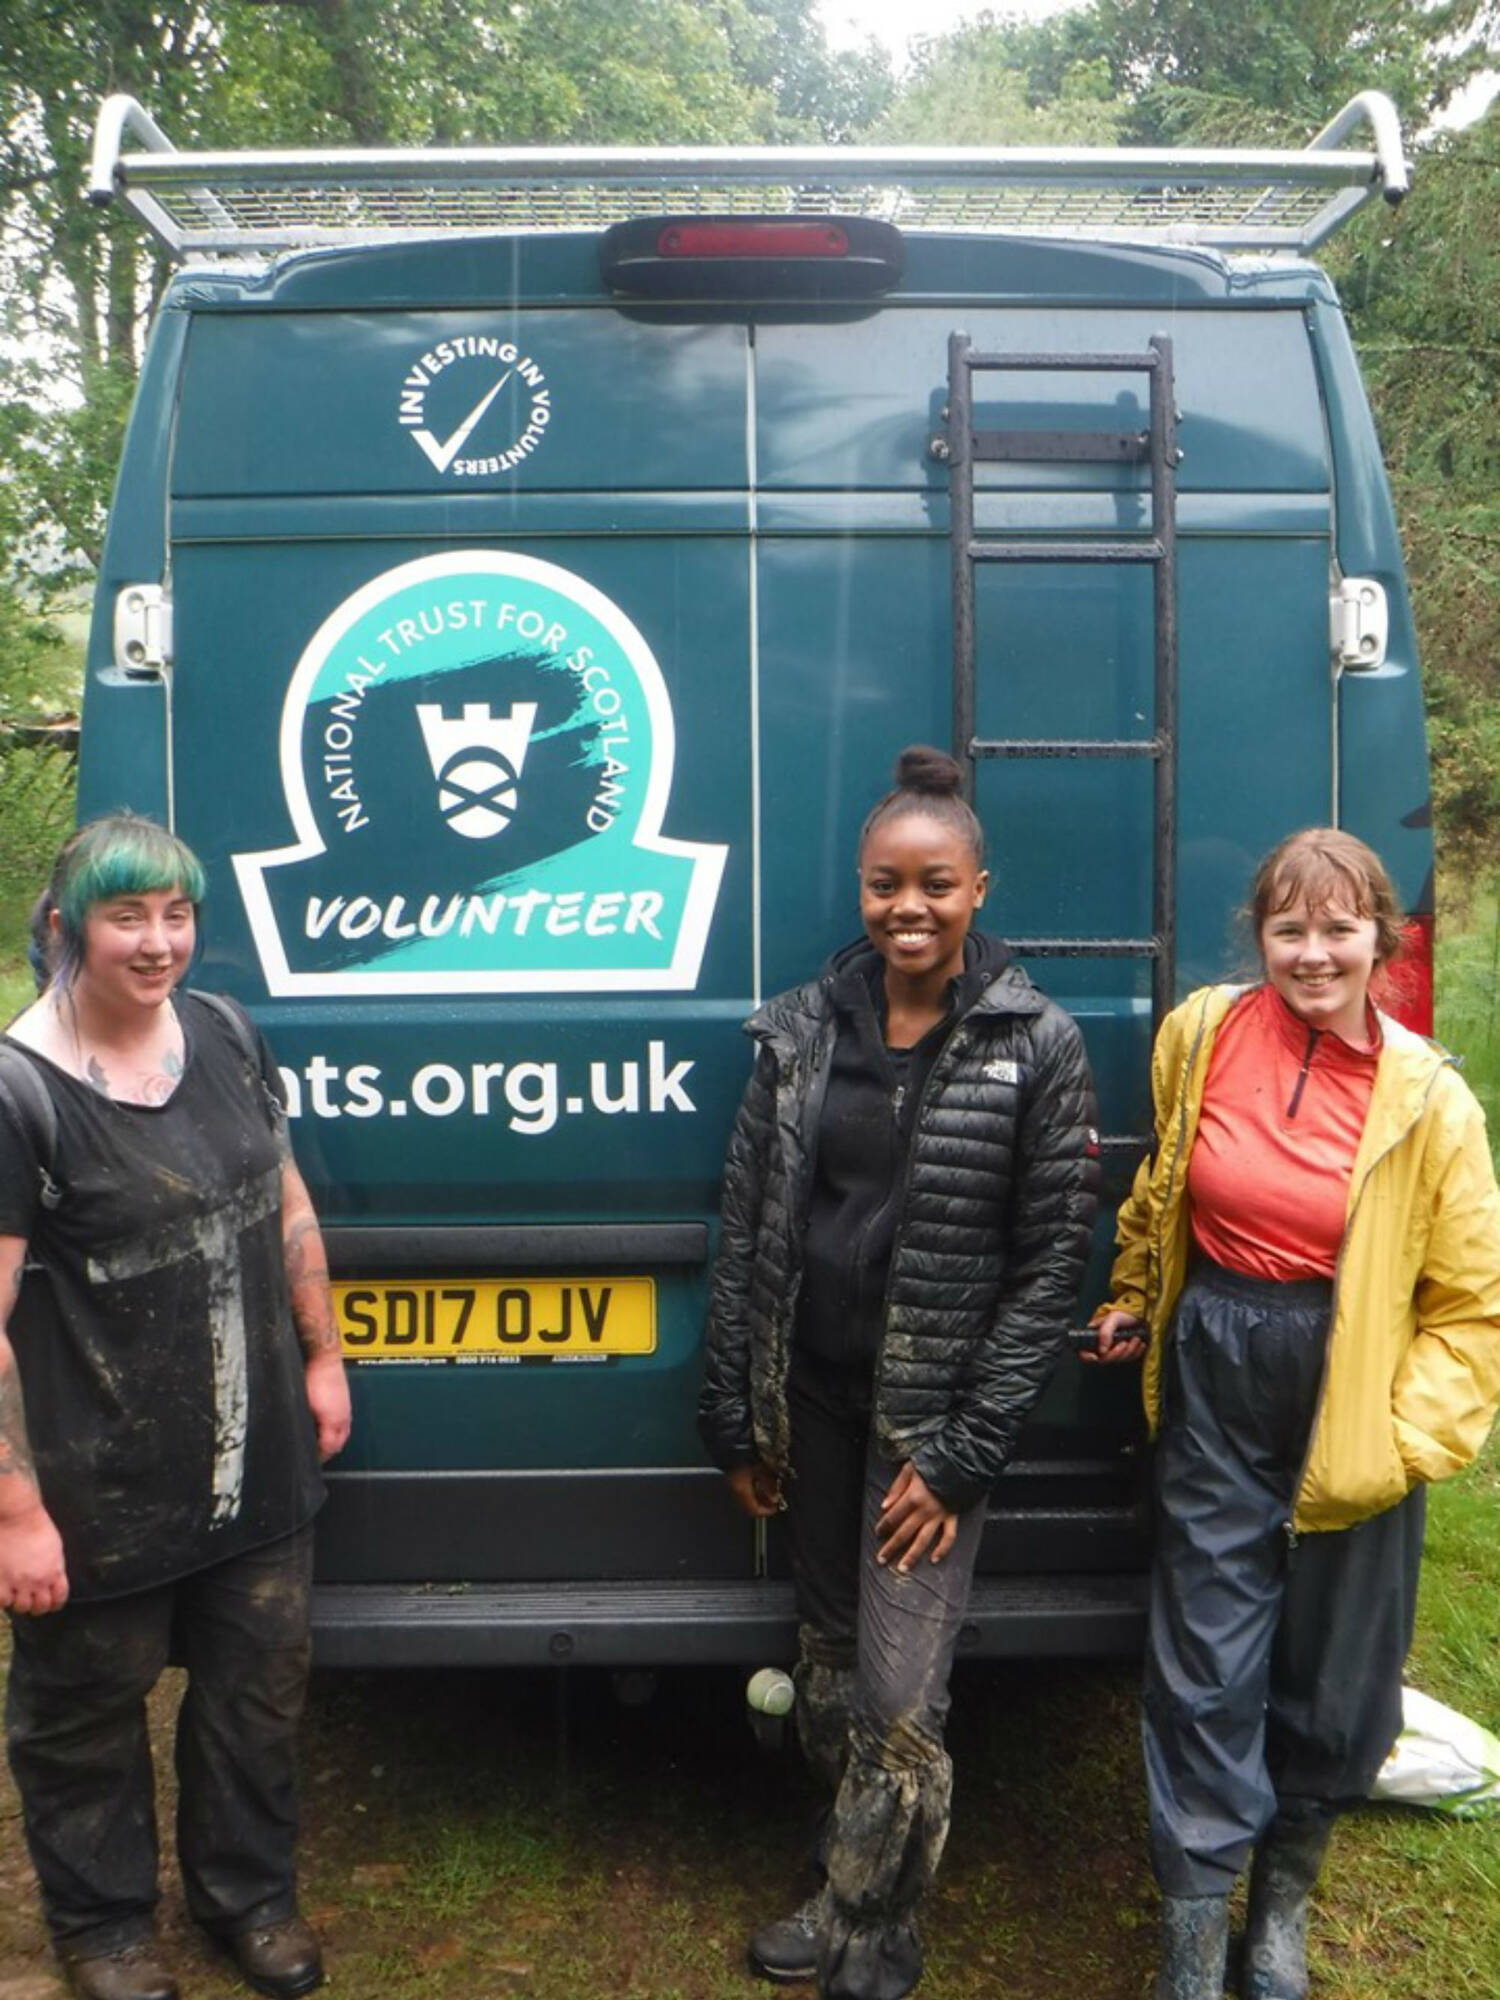 Three women stand with a National Trust for Scotland omega sign at the back of a van